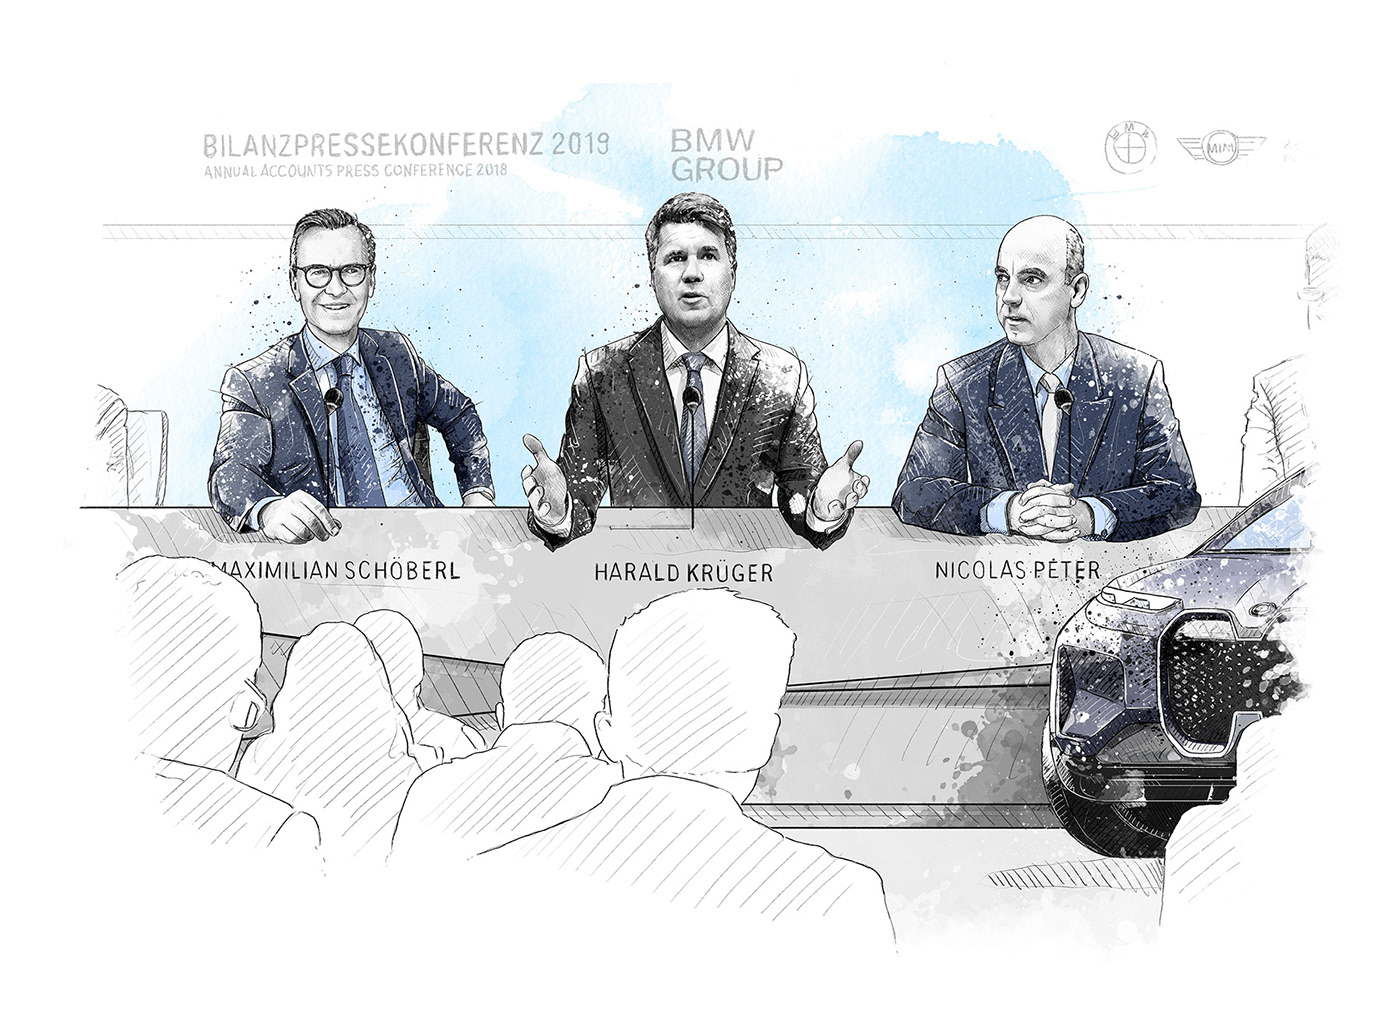 annual report black and white digital illustration drawings Editorial Illustration people portrait Portraiture sports watercolor